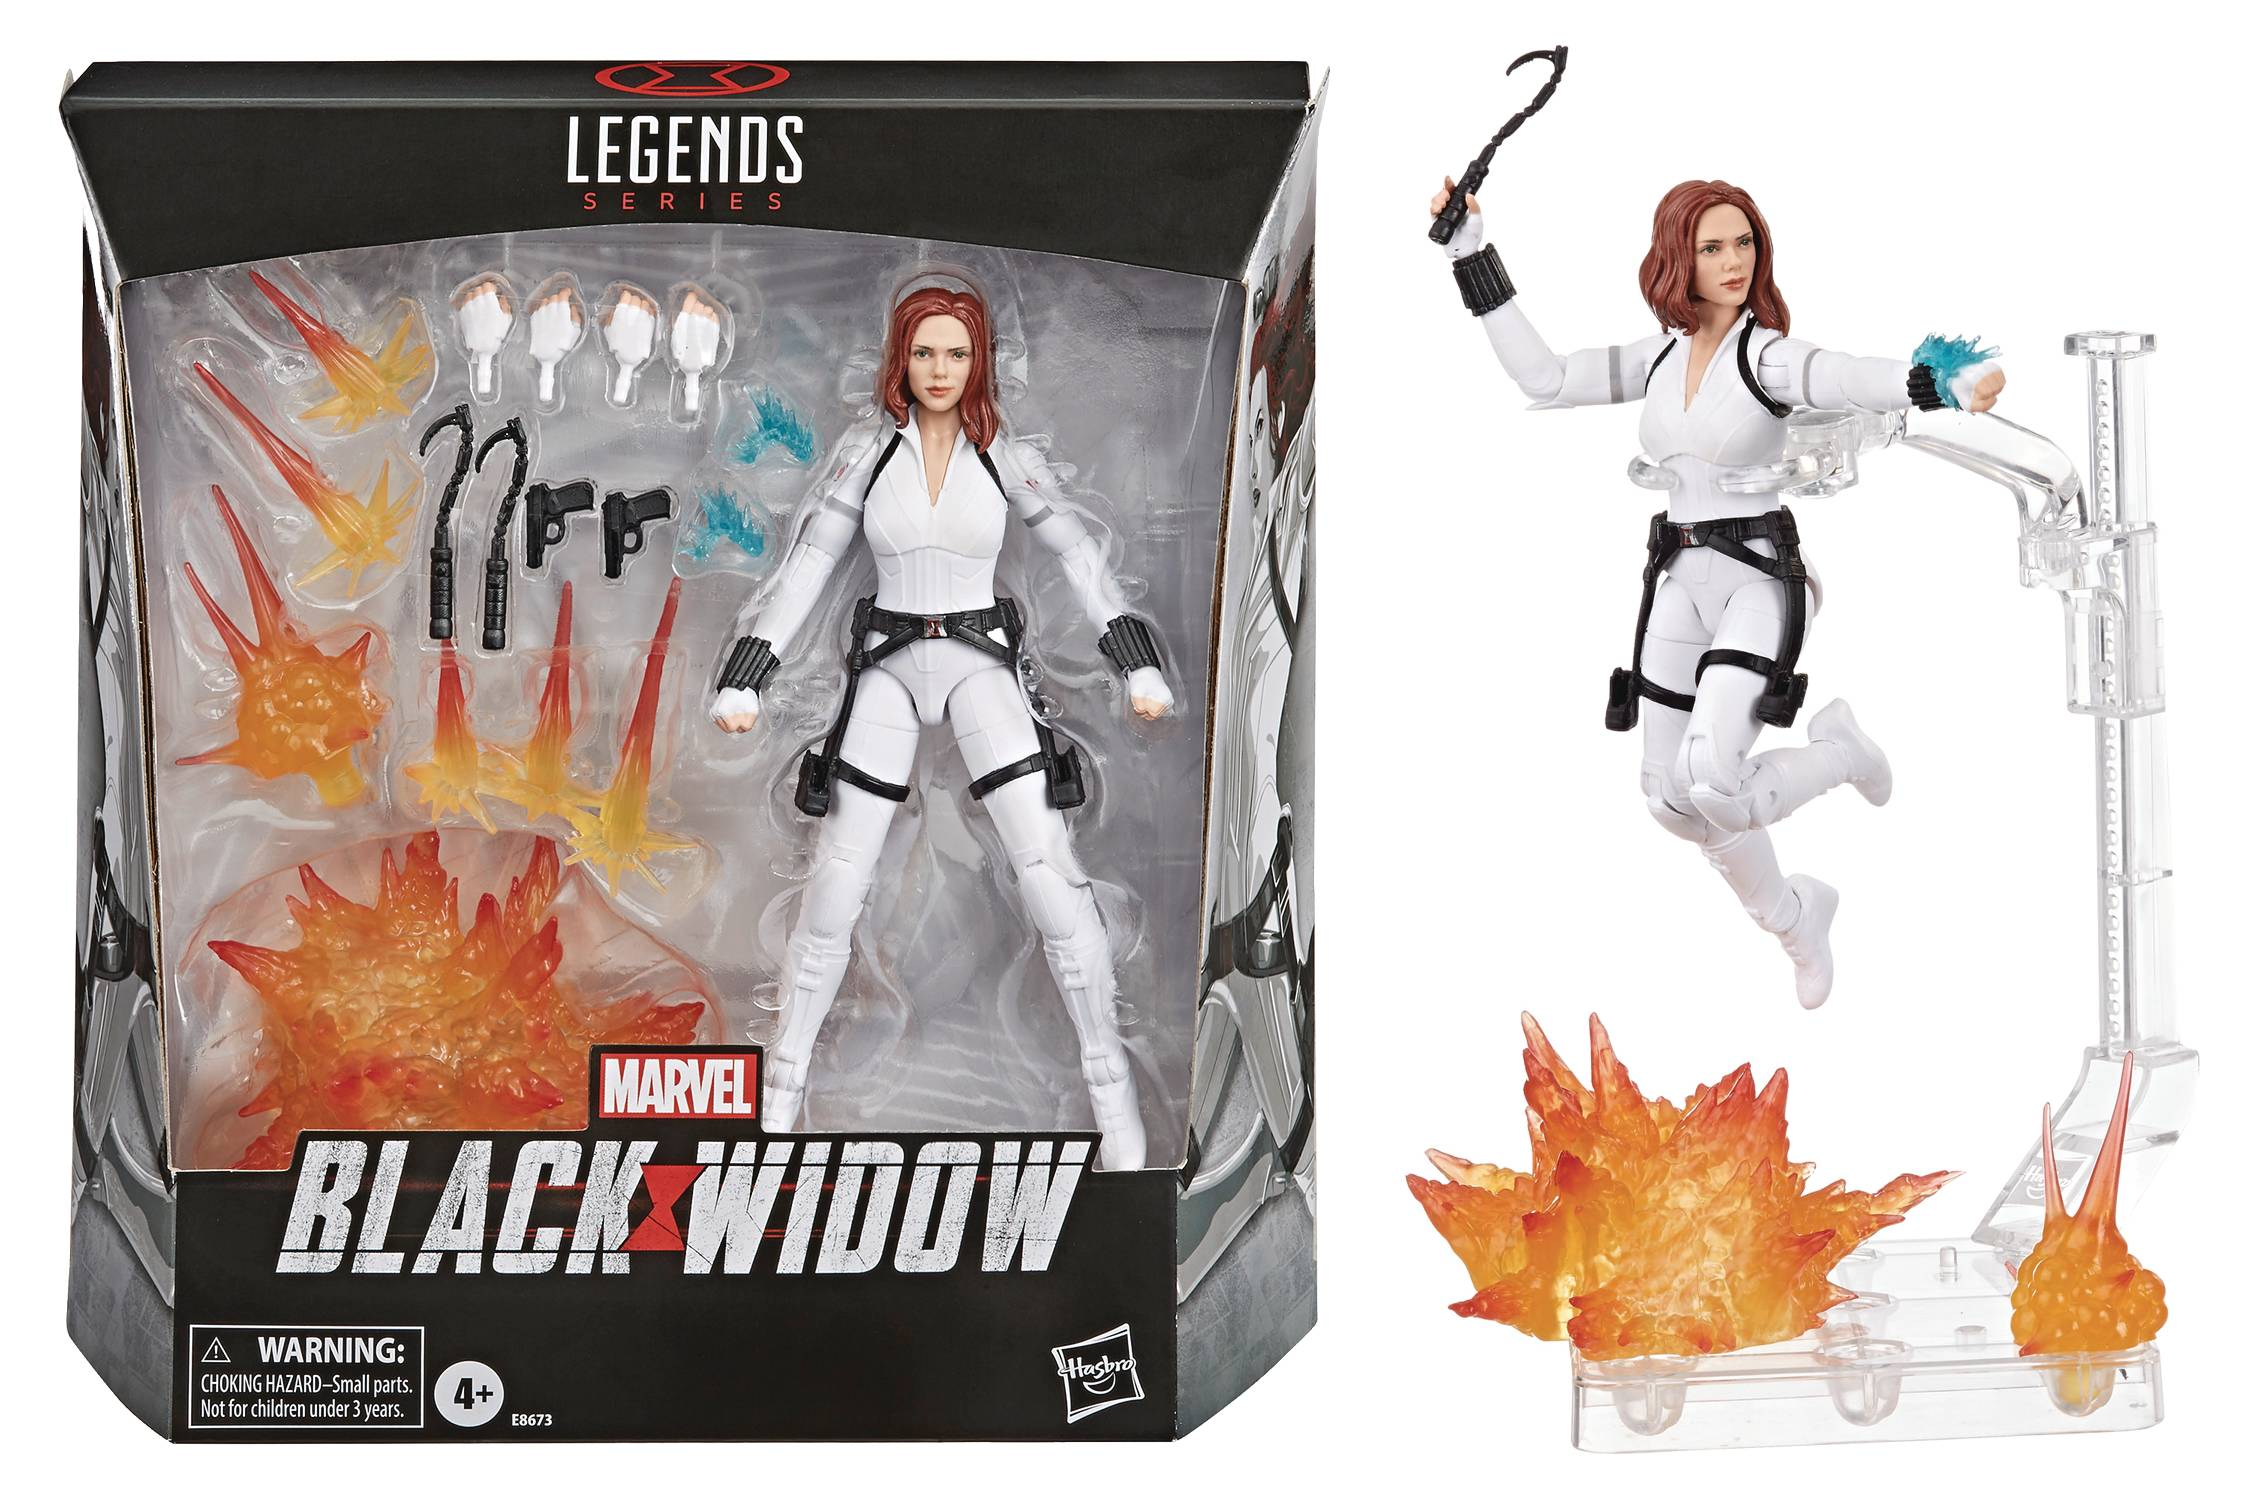 Marvel Legends Black Widow Deluxe Action Figure